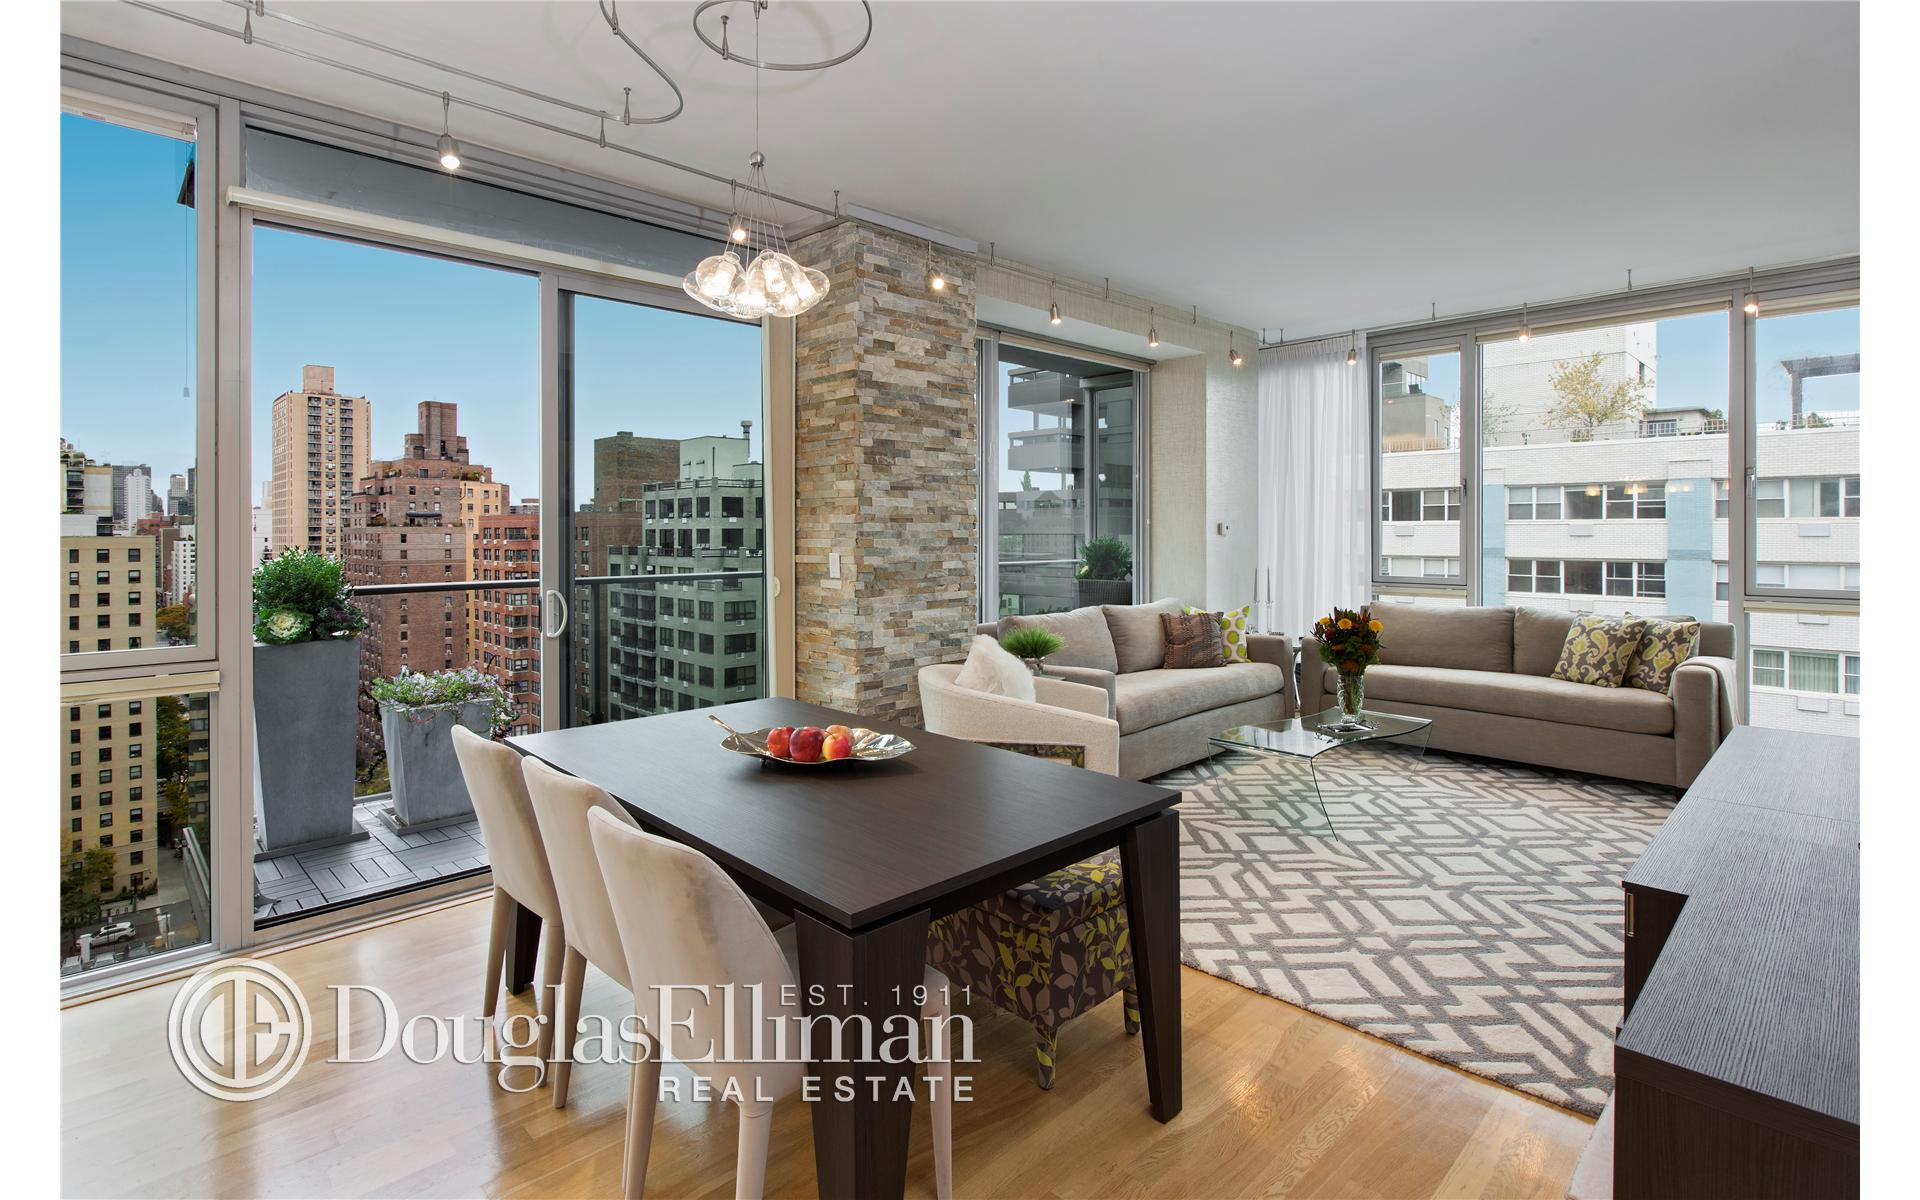 Condominium for Sale at ONE TEN 3RD, One Ten 3rd, 110 Third Avenue New York, New York 10003 United States